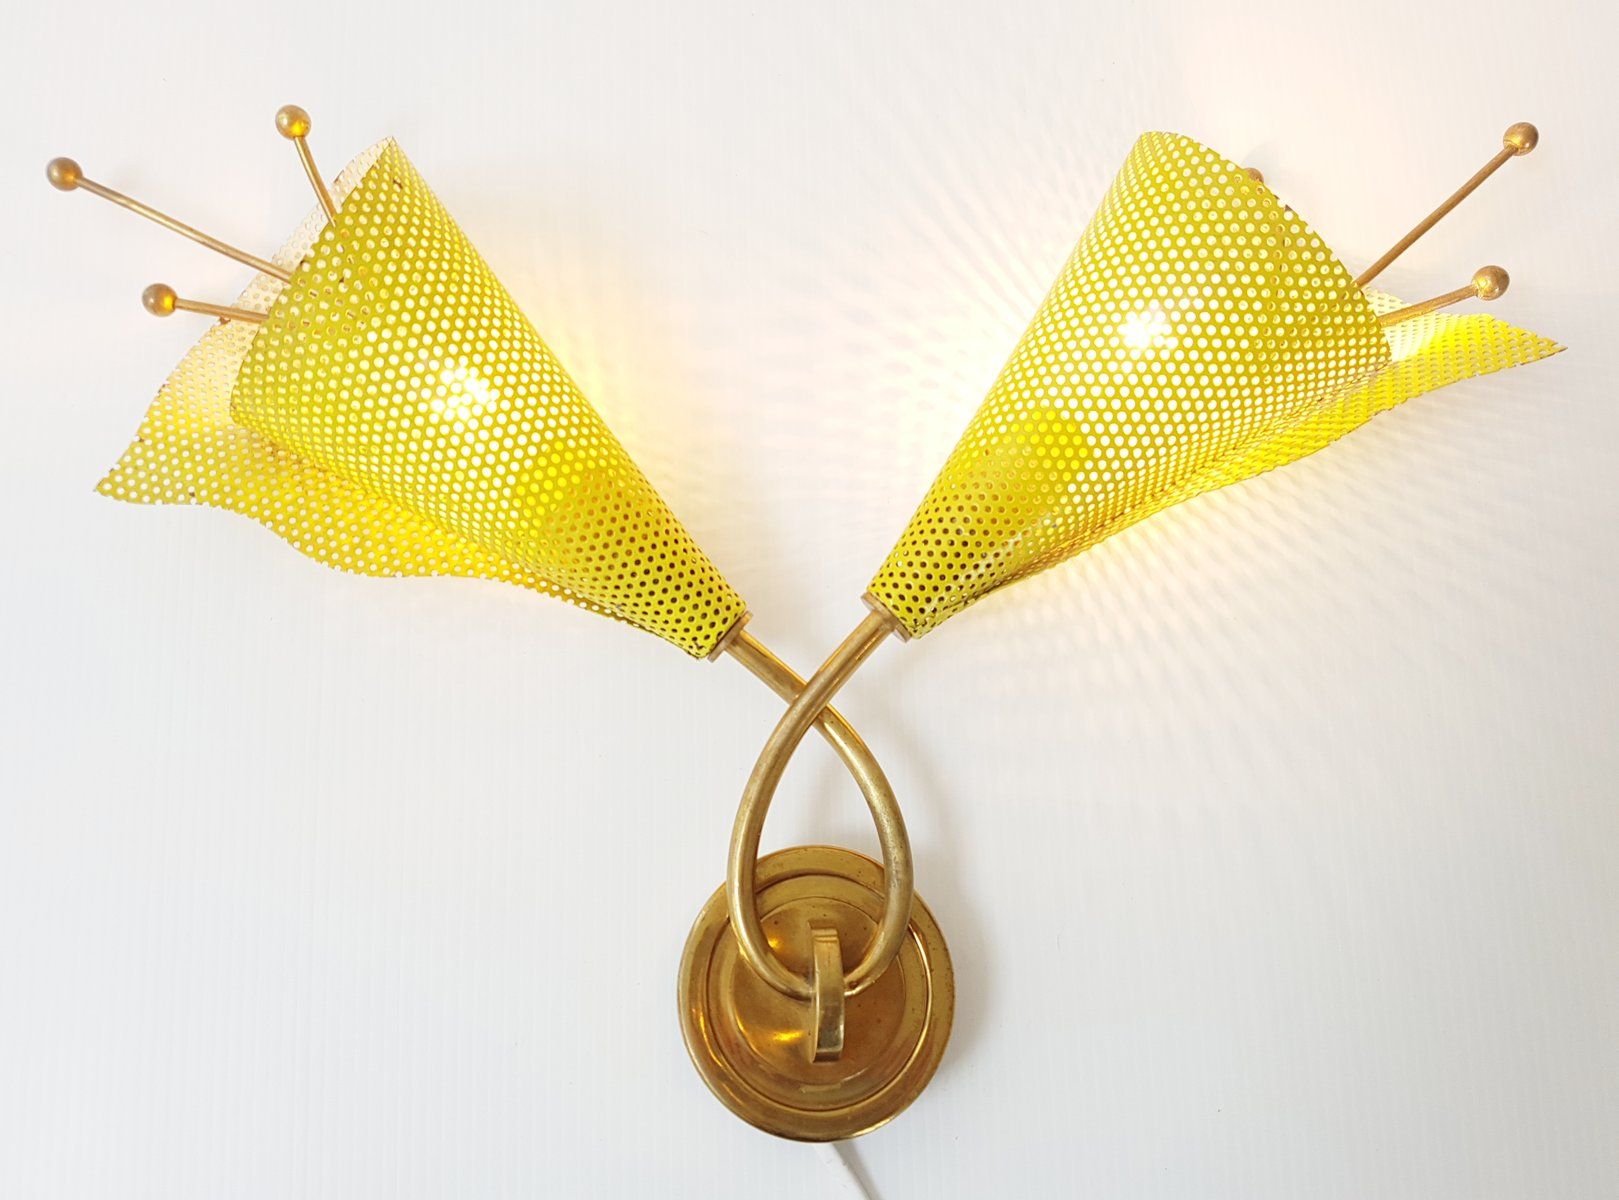 diabolo midcentury furniture listings gino double sconce mid and modern lighting lights sarfatti wall italian sconces shade century